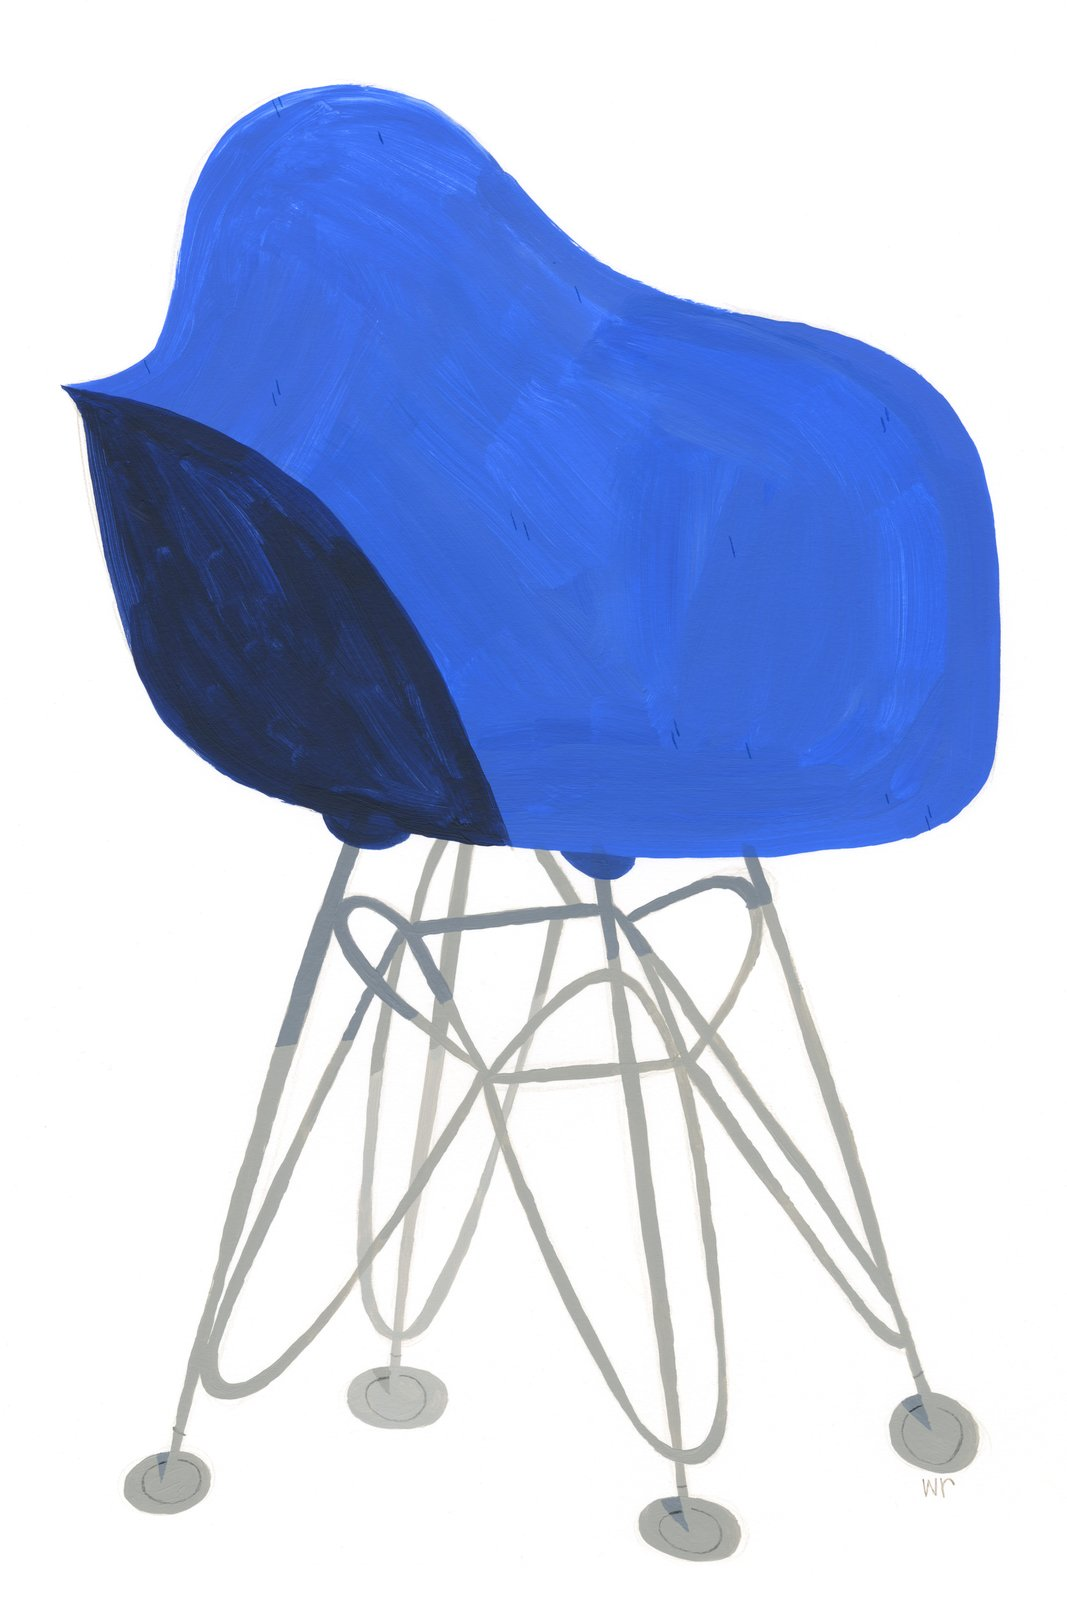 """Blue DFSR by Willie Real  """"Their designs are so beautifully simple yet bold, with tireless contemplation behind them. Their overall sense of style remains iconic today and continues to influence new designers."""" The gallery says.  Get Your Eames Fix at This Gallery   by Matthew Keeshin"""